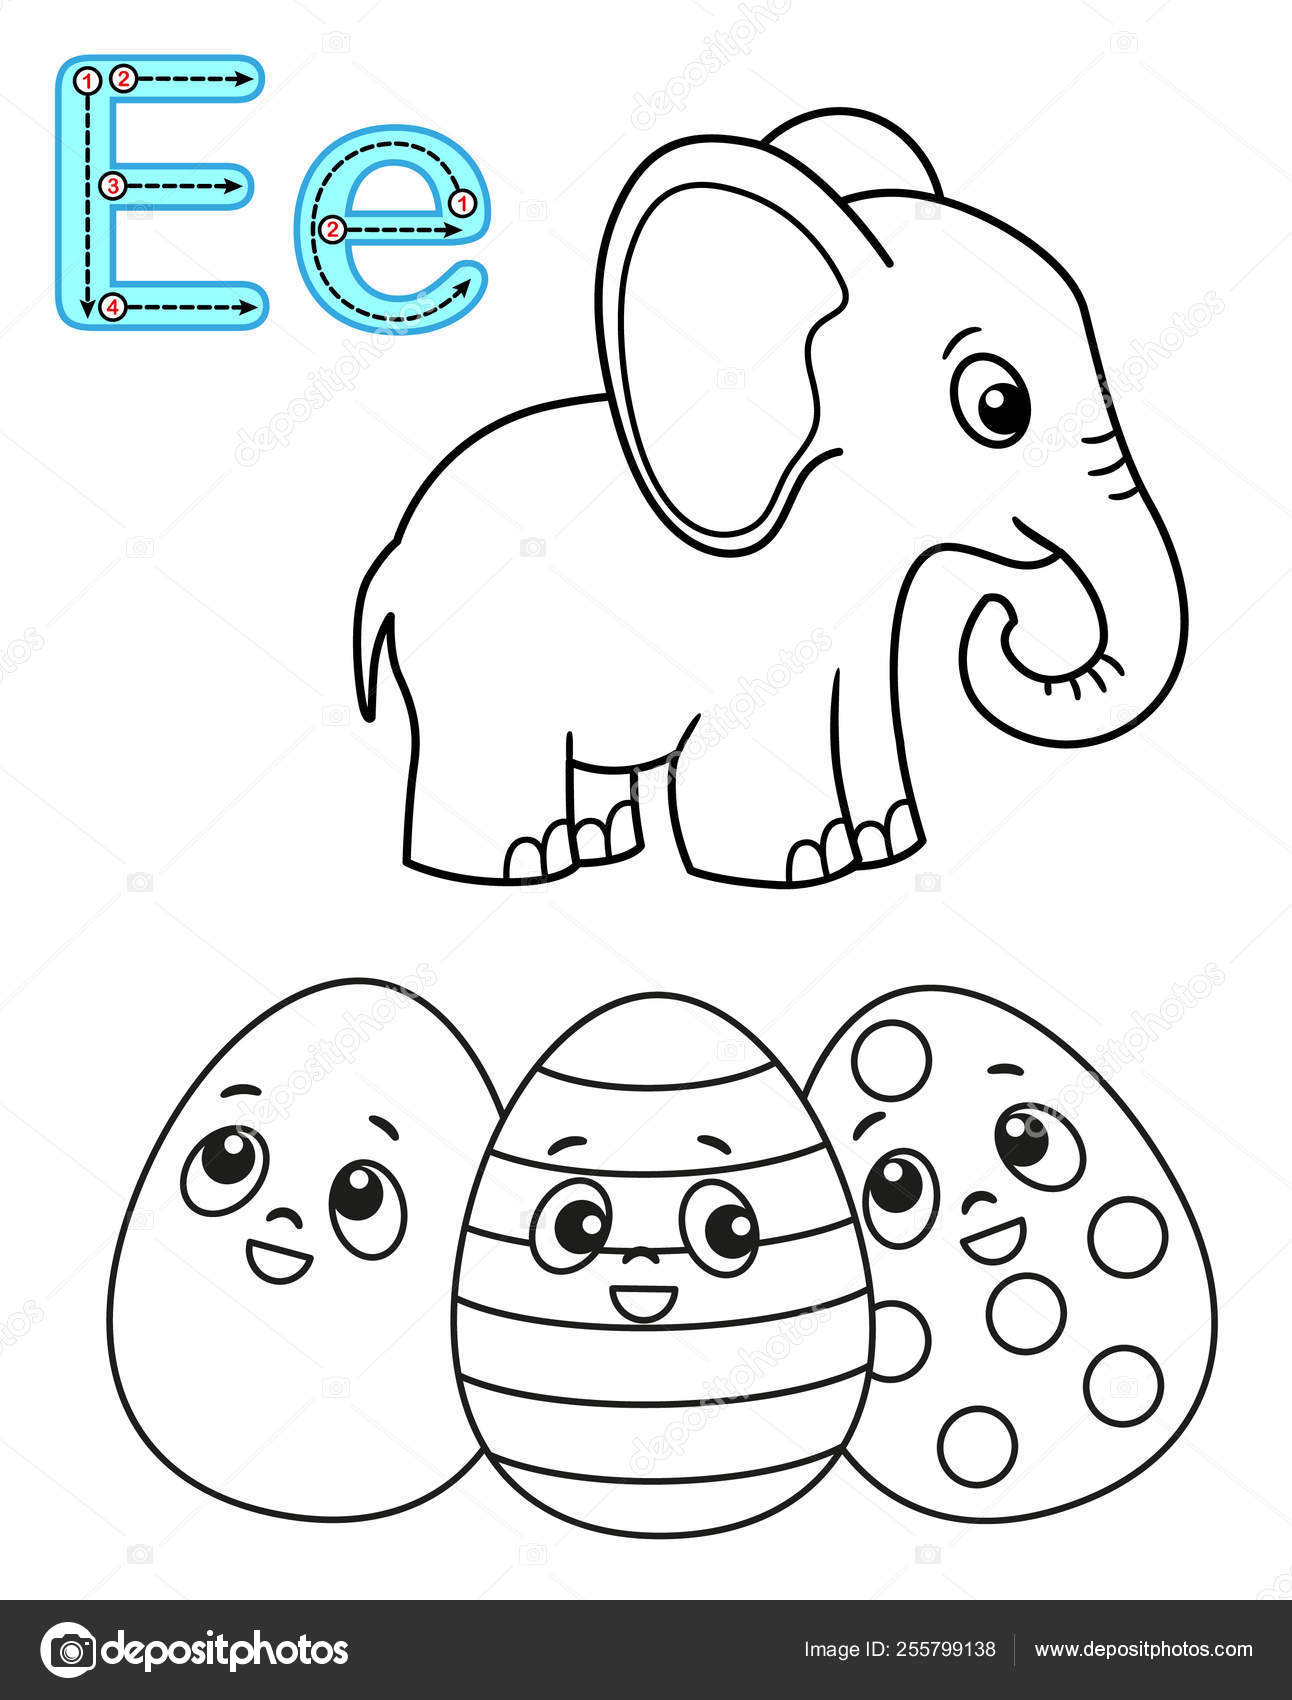 - Letter E Art Projects For Preschoolers Printable Coloring Page